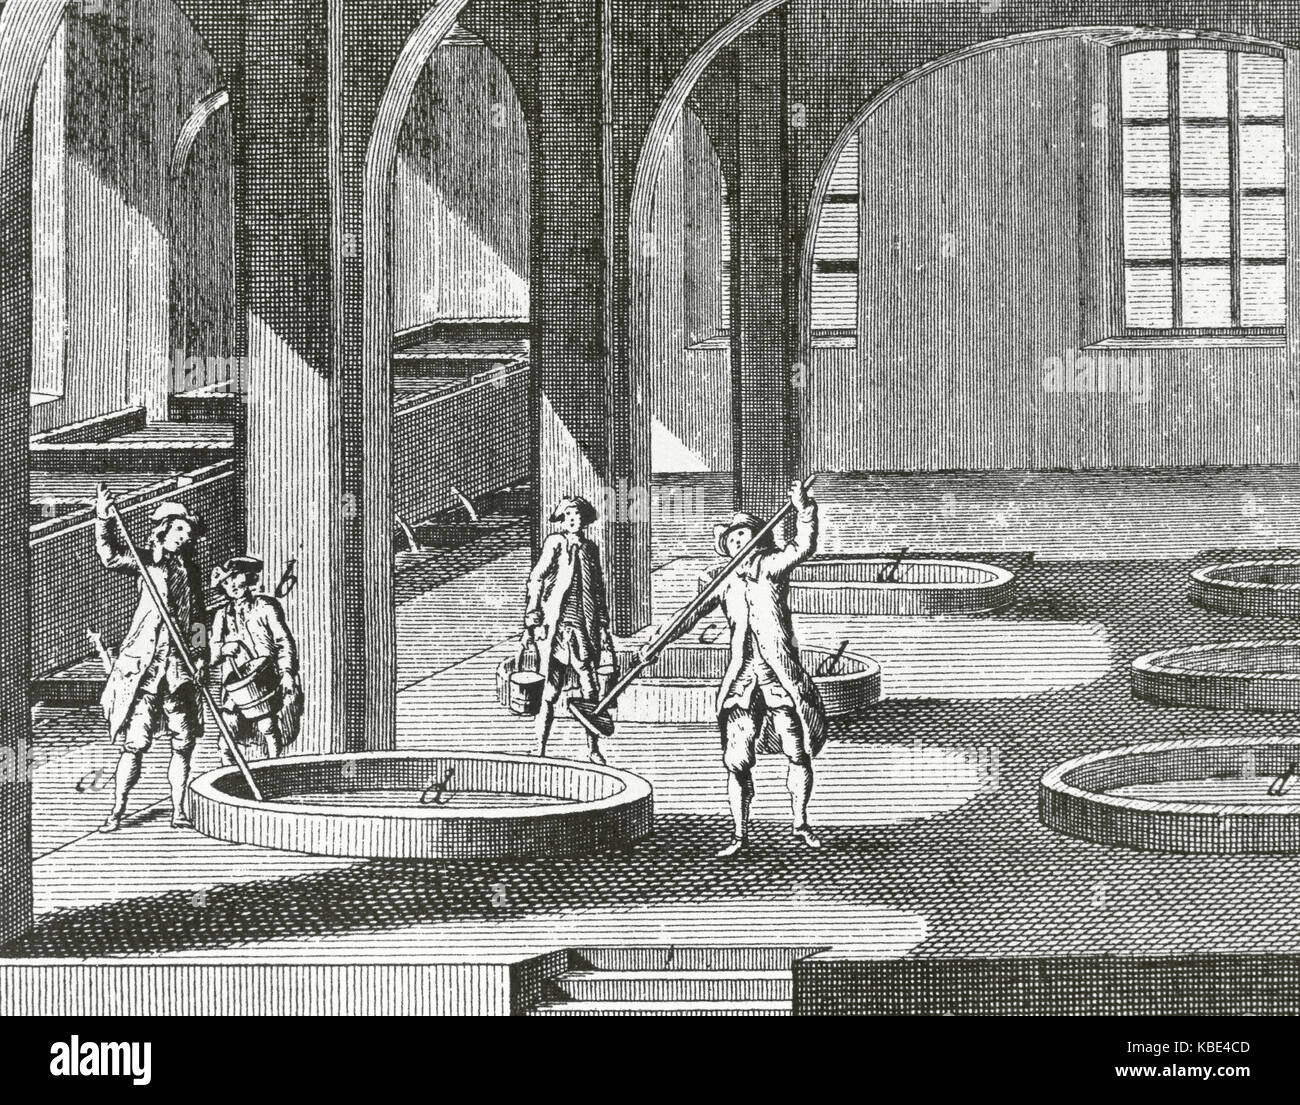 Soap factory. Mixing process. 18th century. Encyclopedie by Diderot et d'Alembert. Engraving. - Stock Image